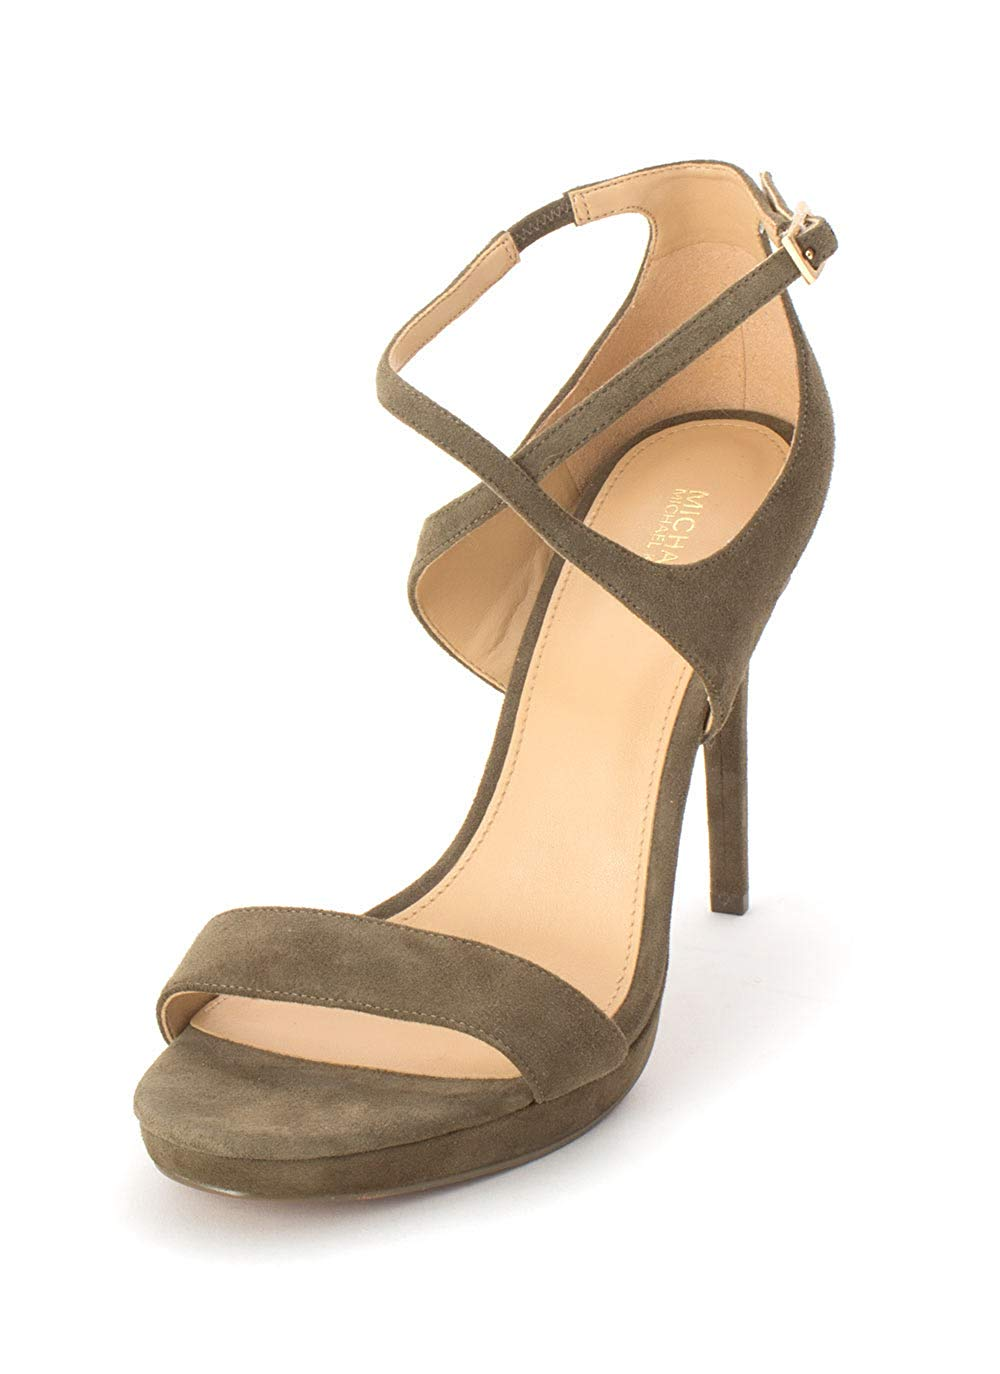 d6efd71d1f6f Details about Michael Michael Kors Womens Faryn Leather Open Toe Casual Strappy  Sandals